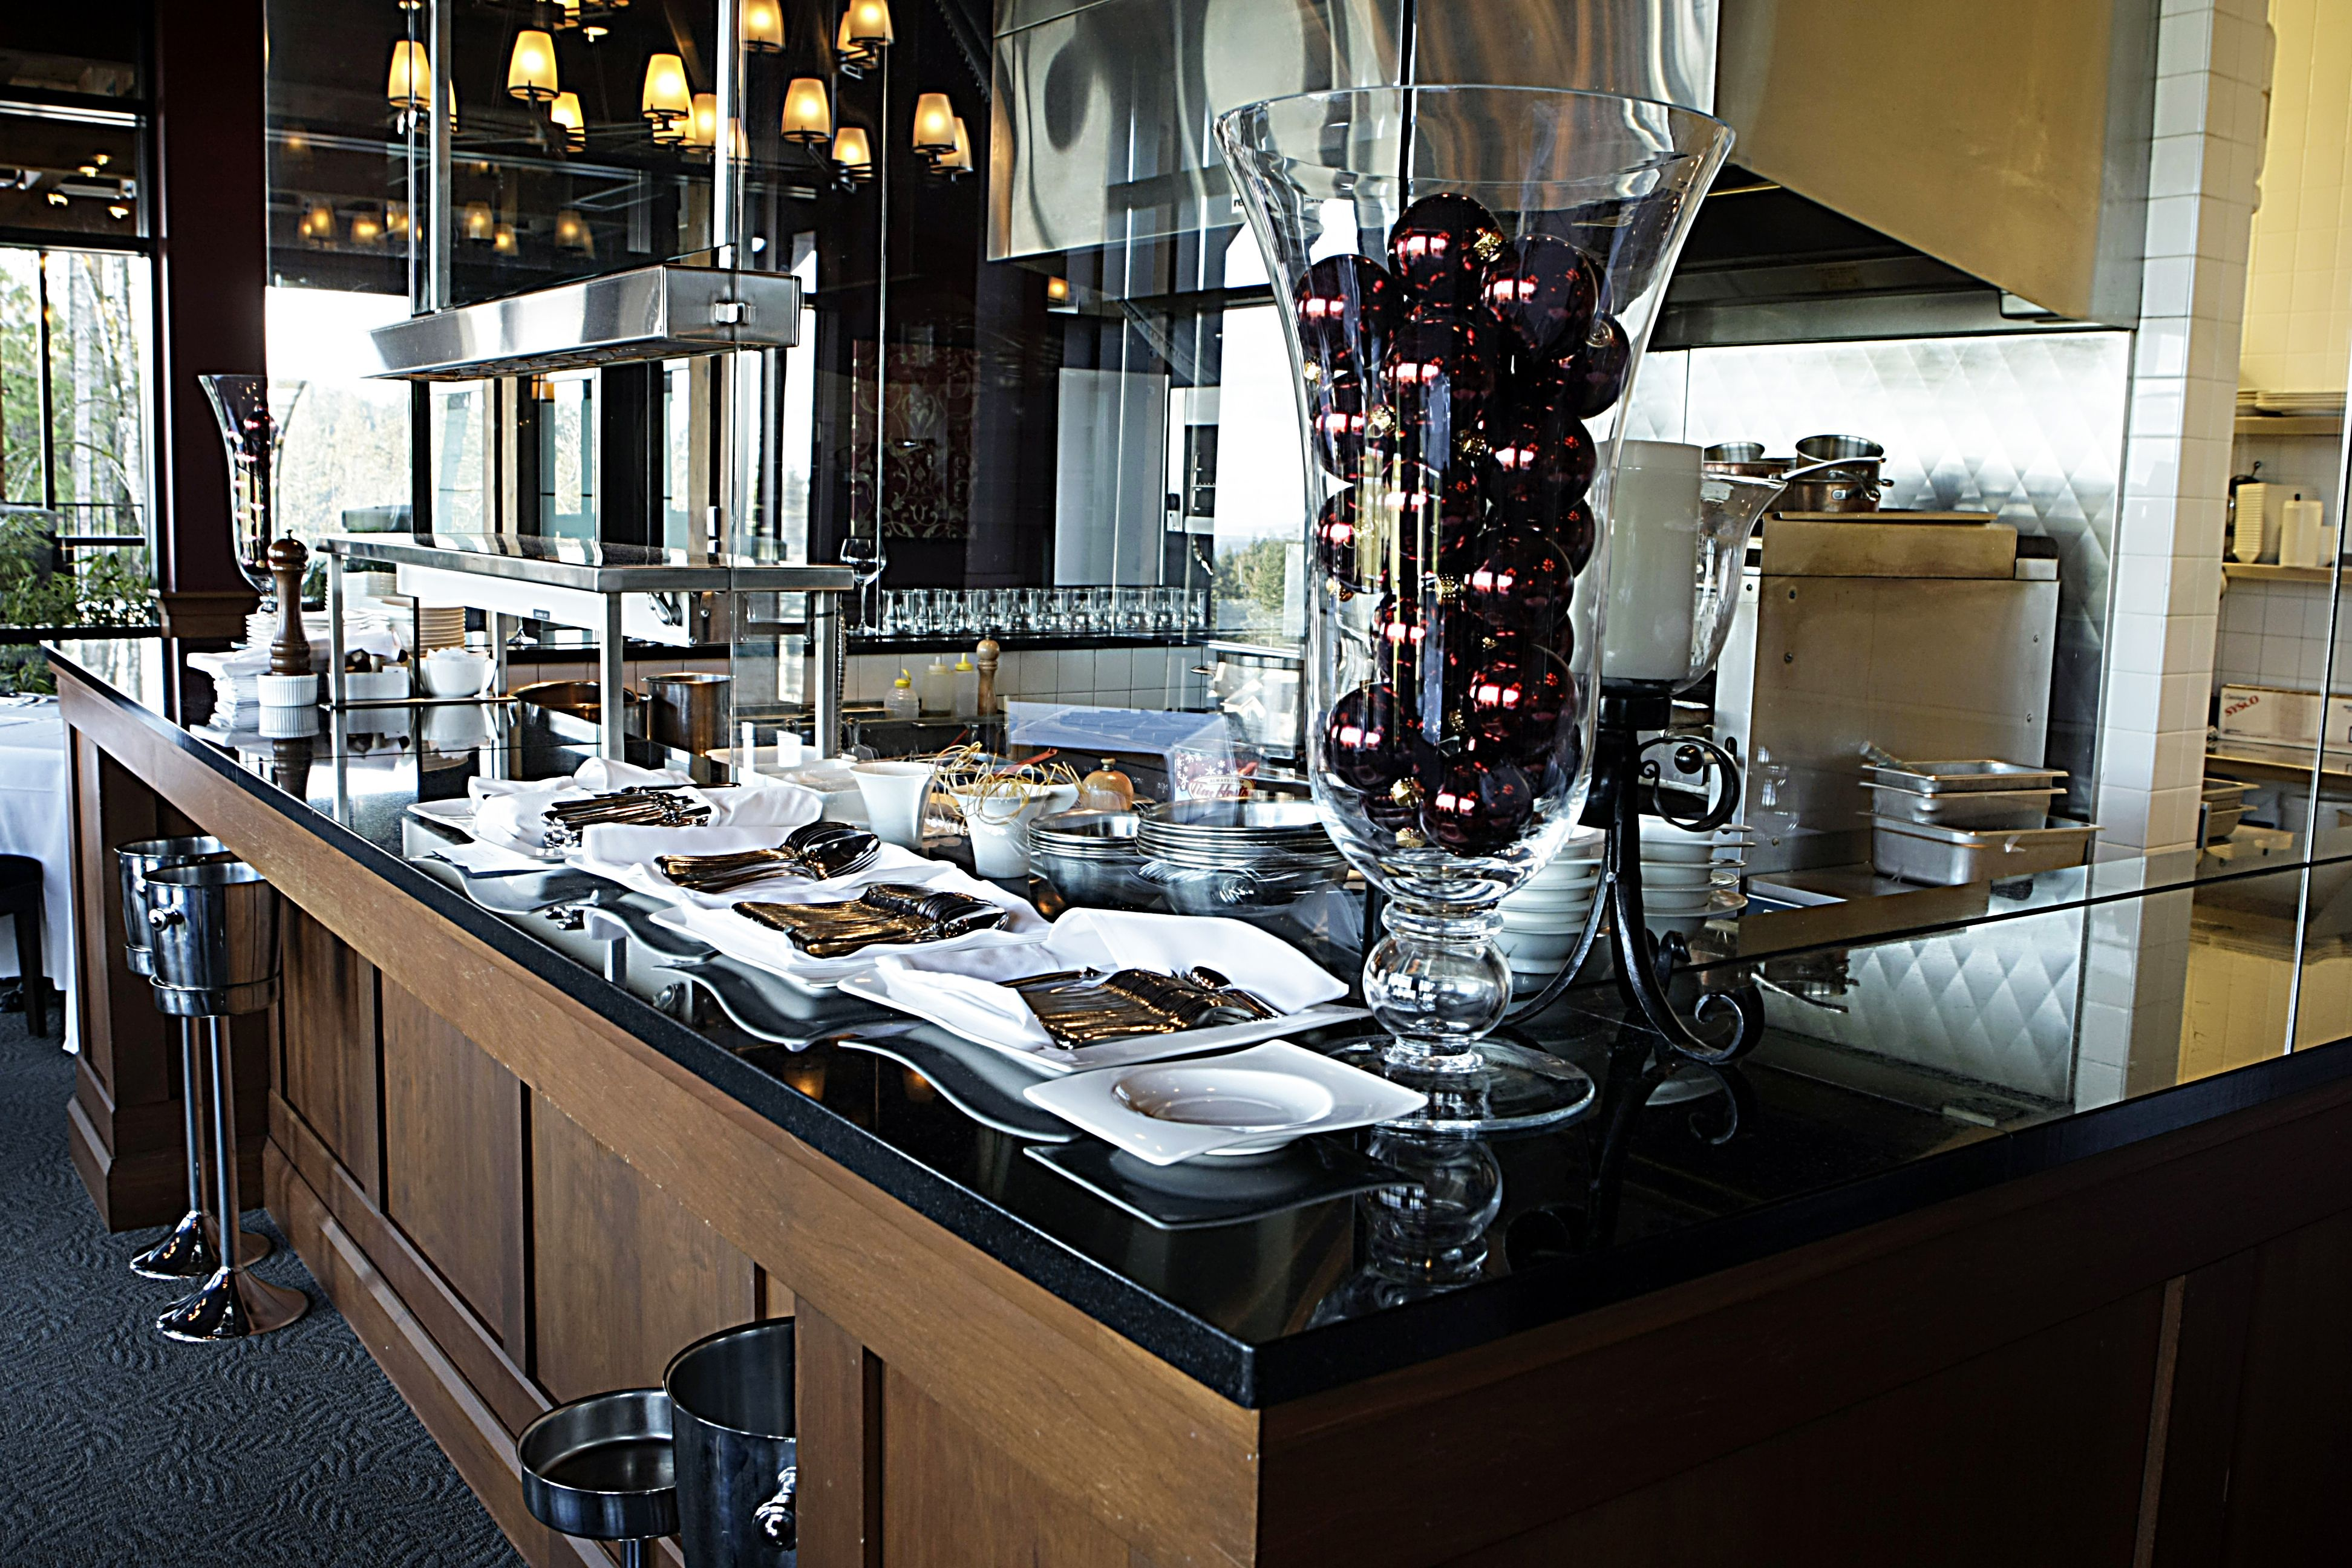 for decorating faux download image awesome elegant perfect kitchen inspirational restaurant tin and fancy interior countertops tiles ceiling cleaning caring of